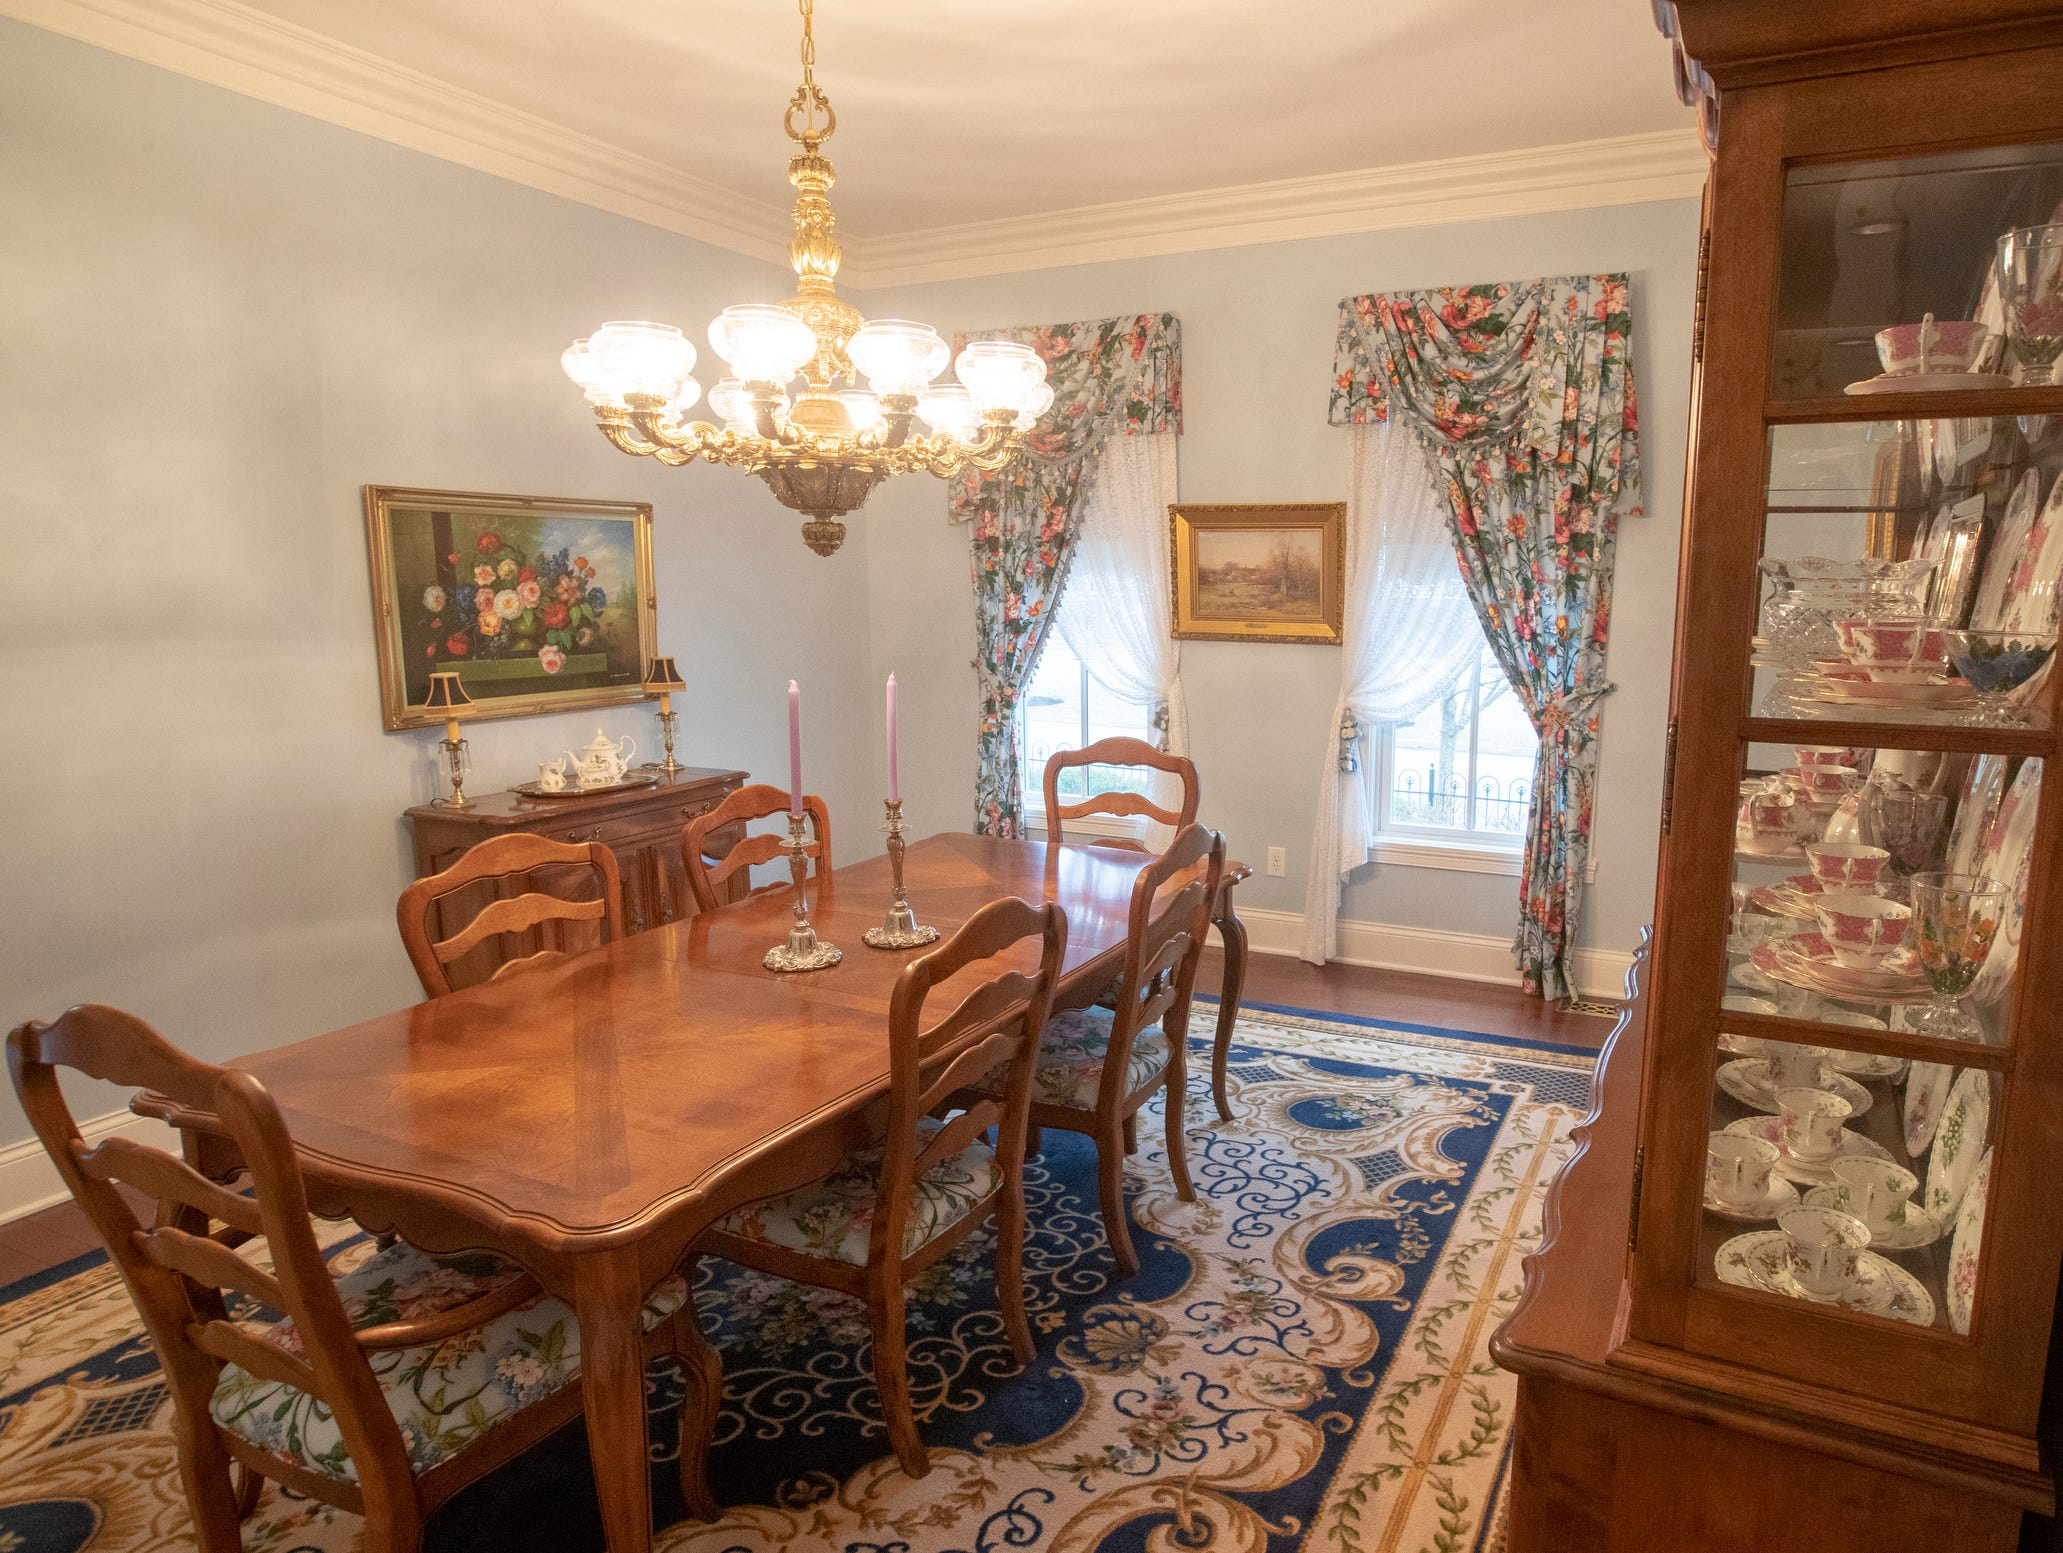 The main dining room in a thirteen-year-old Victorian home in the Village of West Clay, Carmel, March 20, 2019. The house includes 16 rooms with five bedrooms, 8,348 square feet, and is listed at $1.275 million.